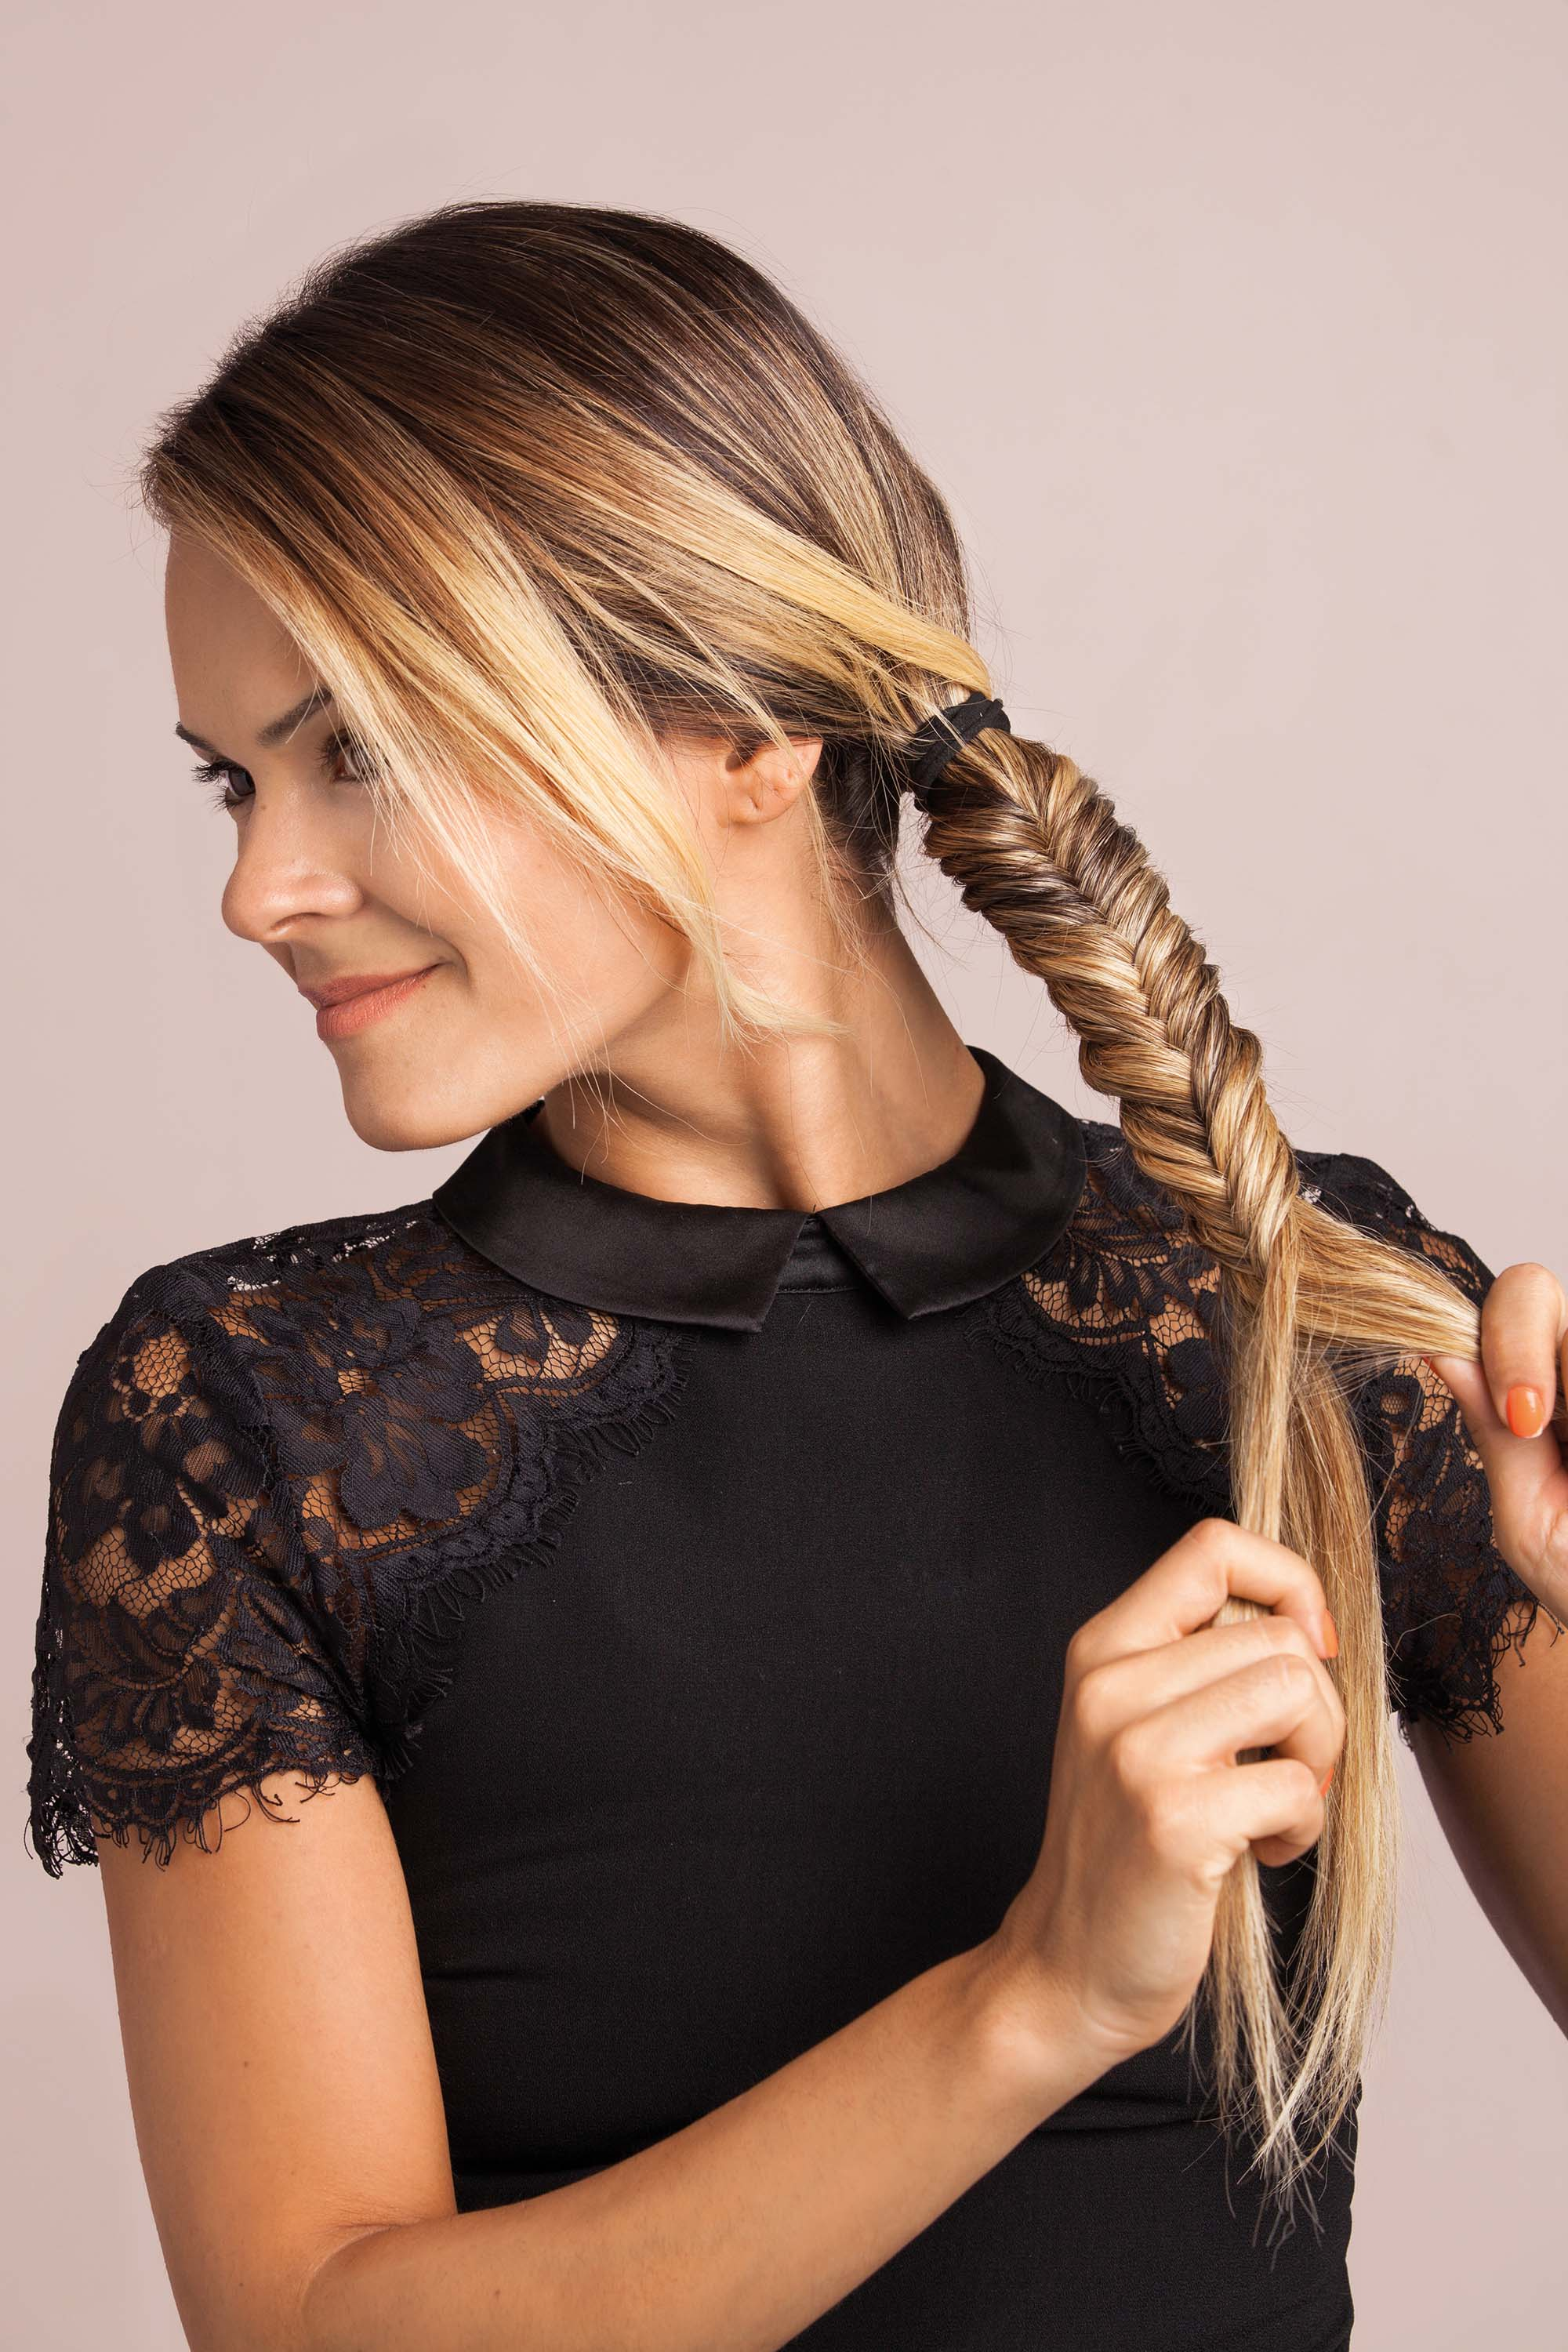 How To Create A Fishtail Braid In Just 5 Minutes